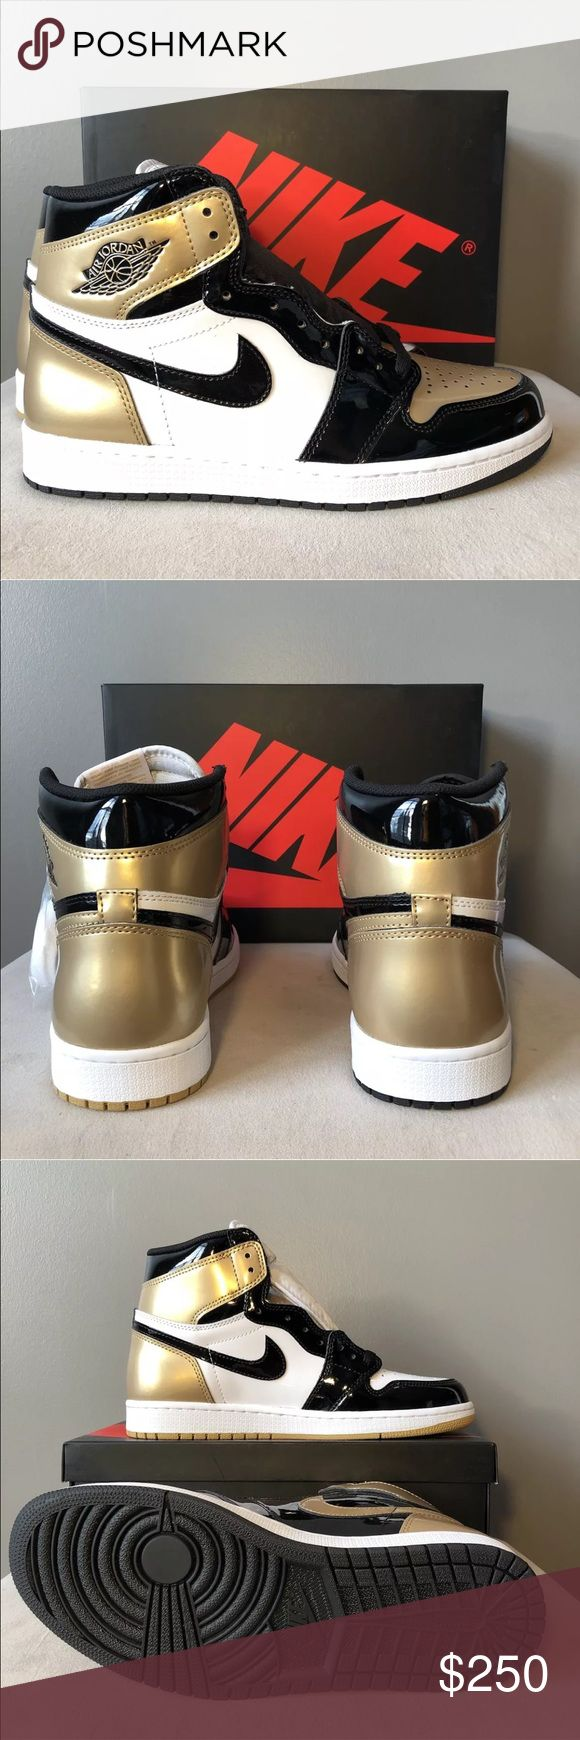 Air Jordan 1 Retro High OG NRG Gold (Read Descrip) 100% Authentic 🔶 We are a very negotiable service 🔶 We provide overnight shipping and express shipping 🔶 Our transactions are made through third party applications 🔶 If you are interested in buying this product please contact us @ 201-496-0366 🔶 Air Jordan Shoes Sneakers